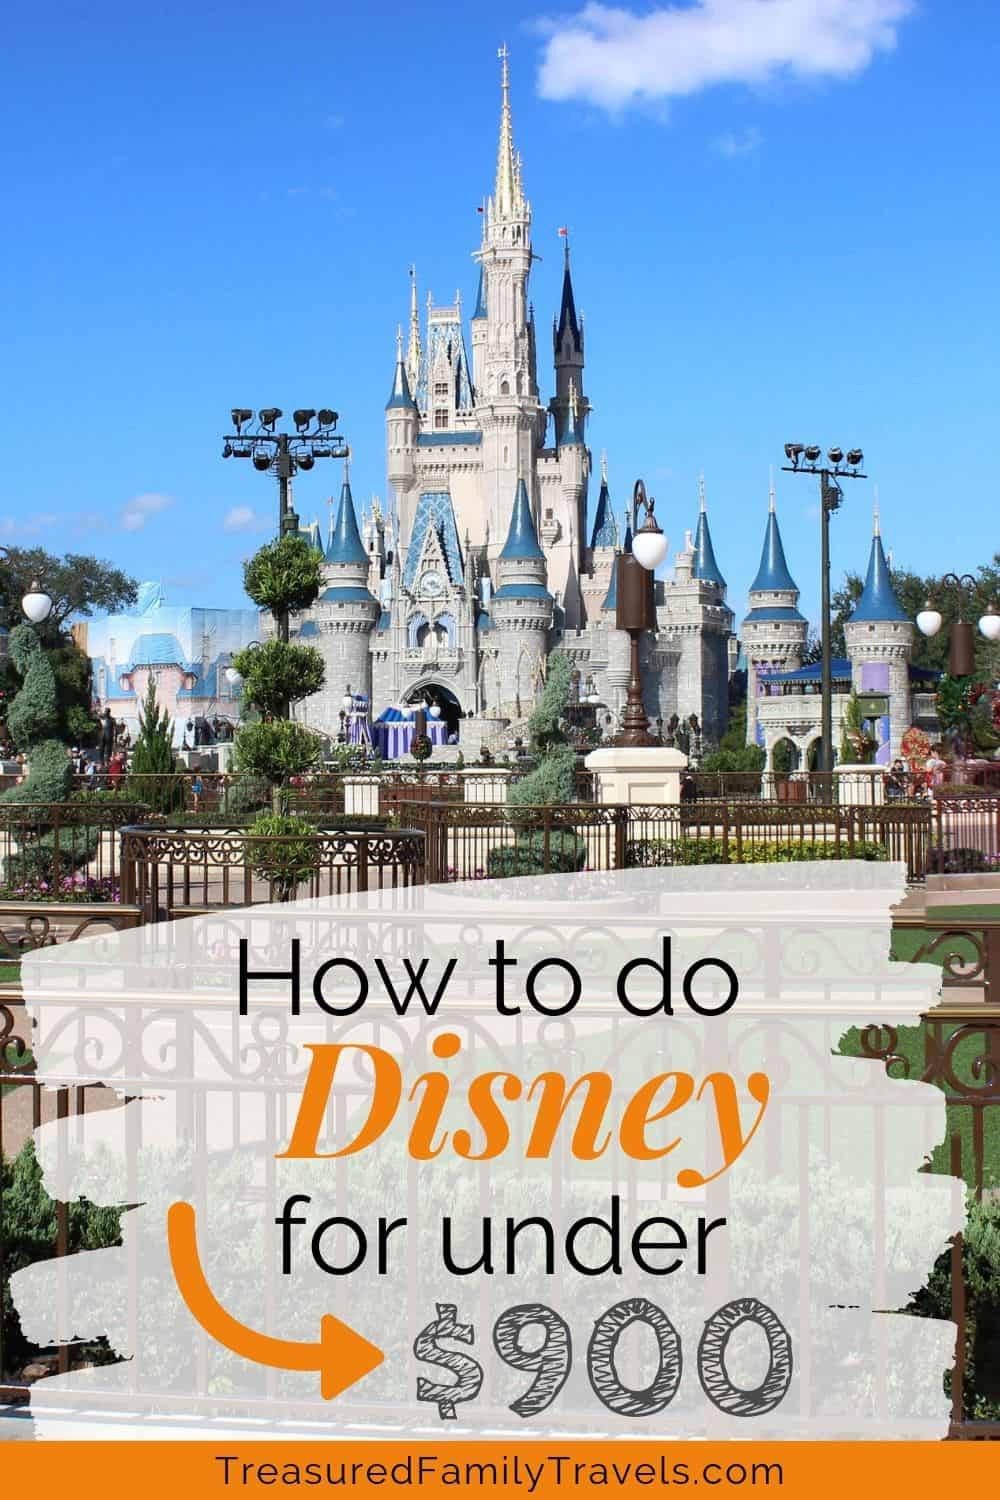 Looking for how to do Disney cheap? From tickets, to hotels, to airfare, doing Disney on a budget can be done. Whether it's just for two or with the kids, you can save money by using credit card travel miles and points to have a wonderful family vacation. These tips show you how Disney on a budget can be done. #Disney #DisneyWorldOnABudget #DisneyOnABudget